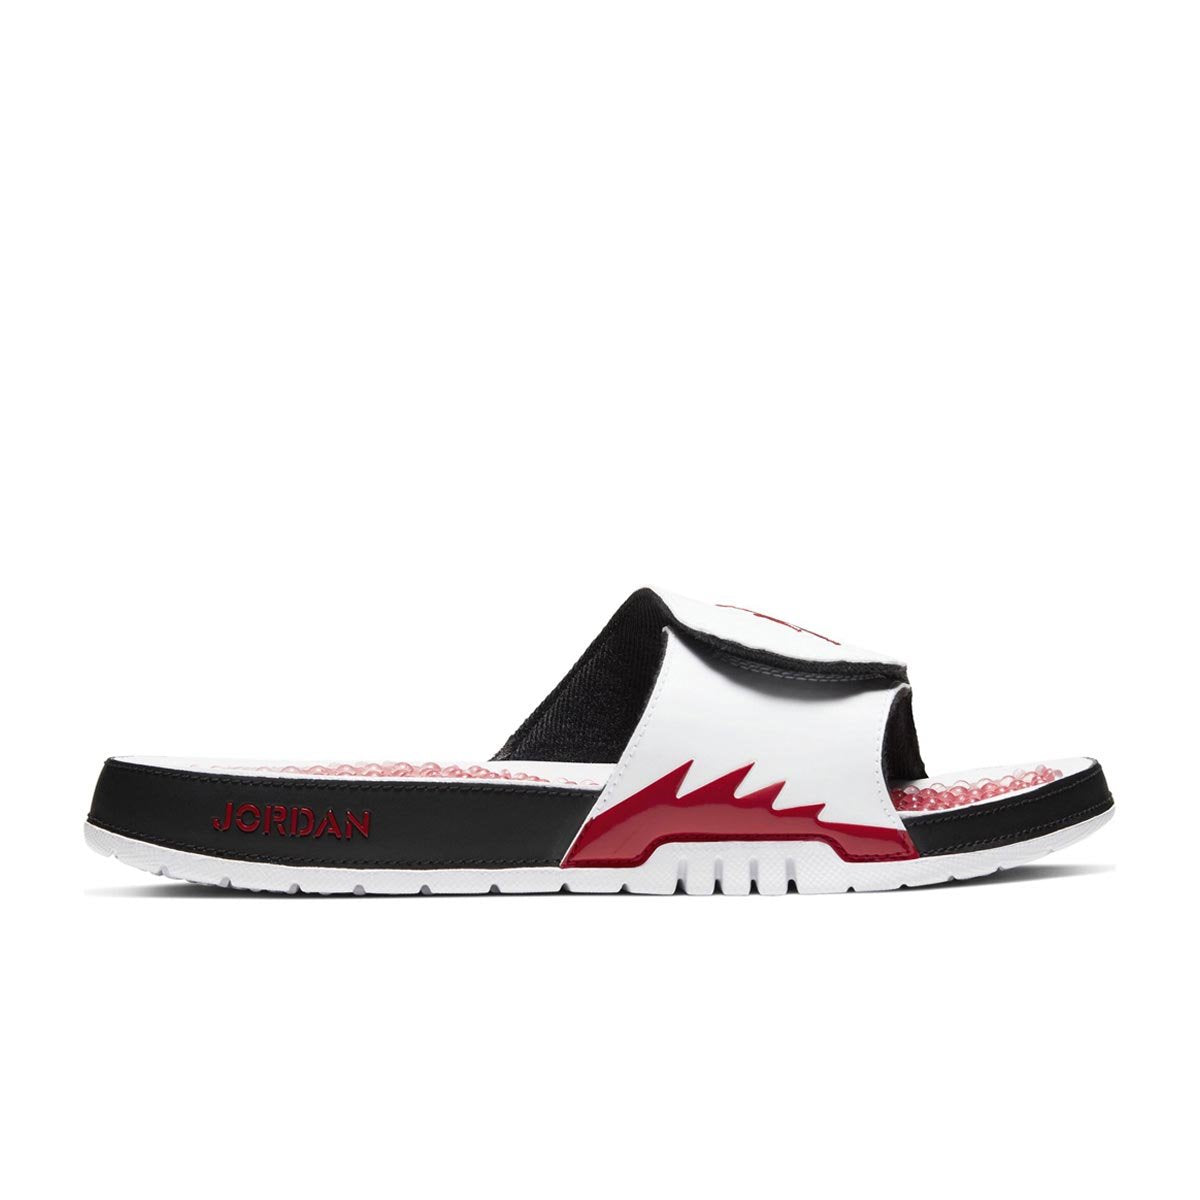 Men's Jordan Hydro V Retro Slide